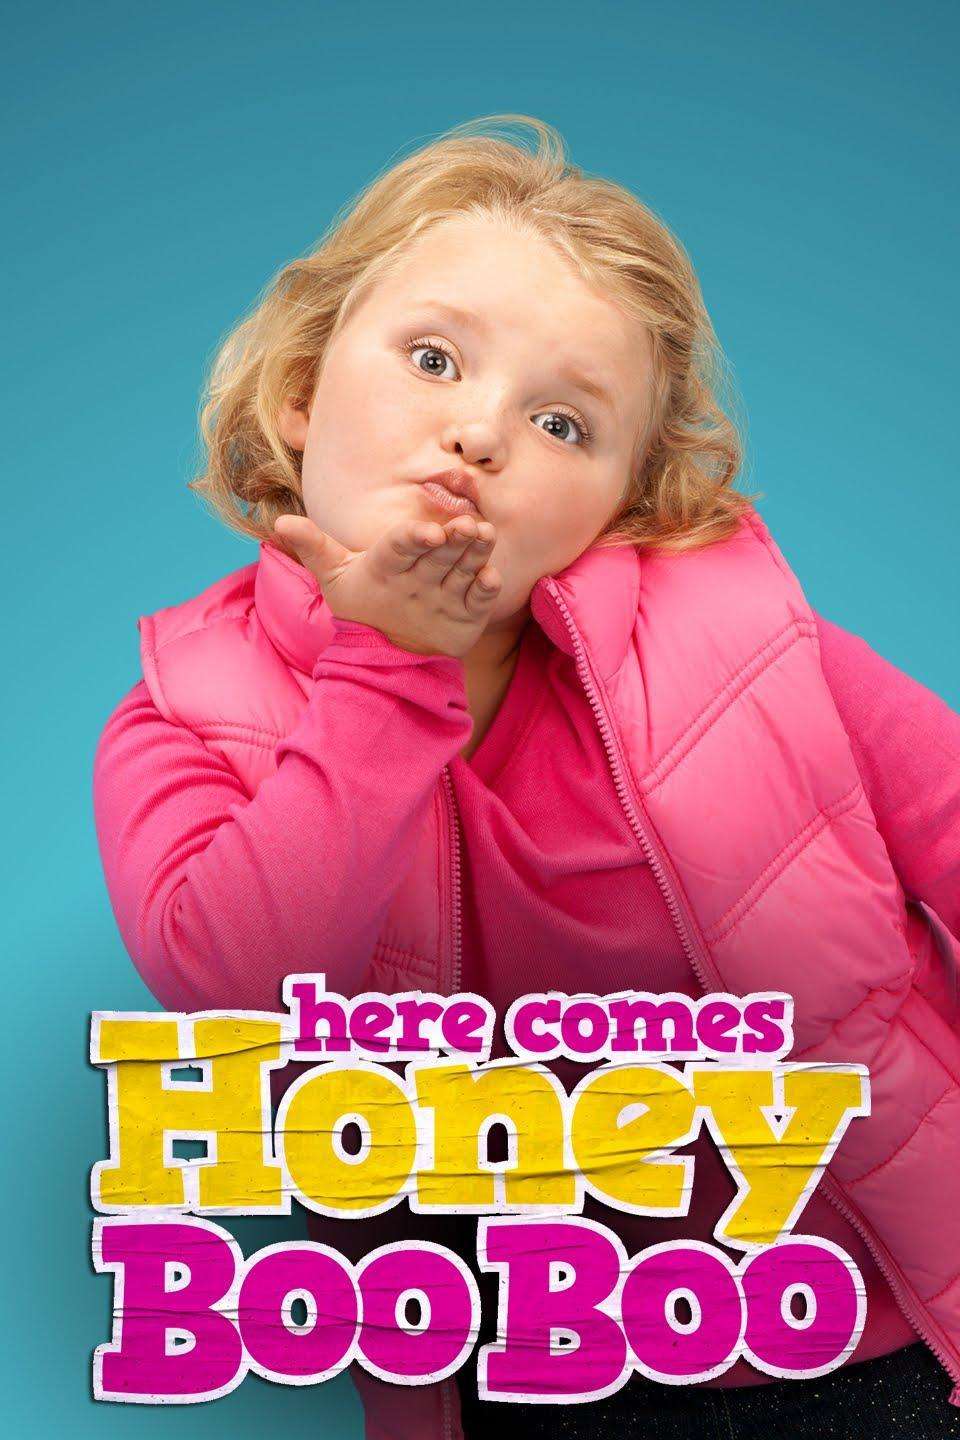 a critique of the television show here comes honey boo boo Top 10 movies for teaching media literacy: part 1 the truman show warned us all about of here comes honey boo boo, the television industry can't stop.